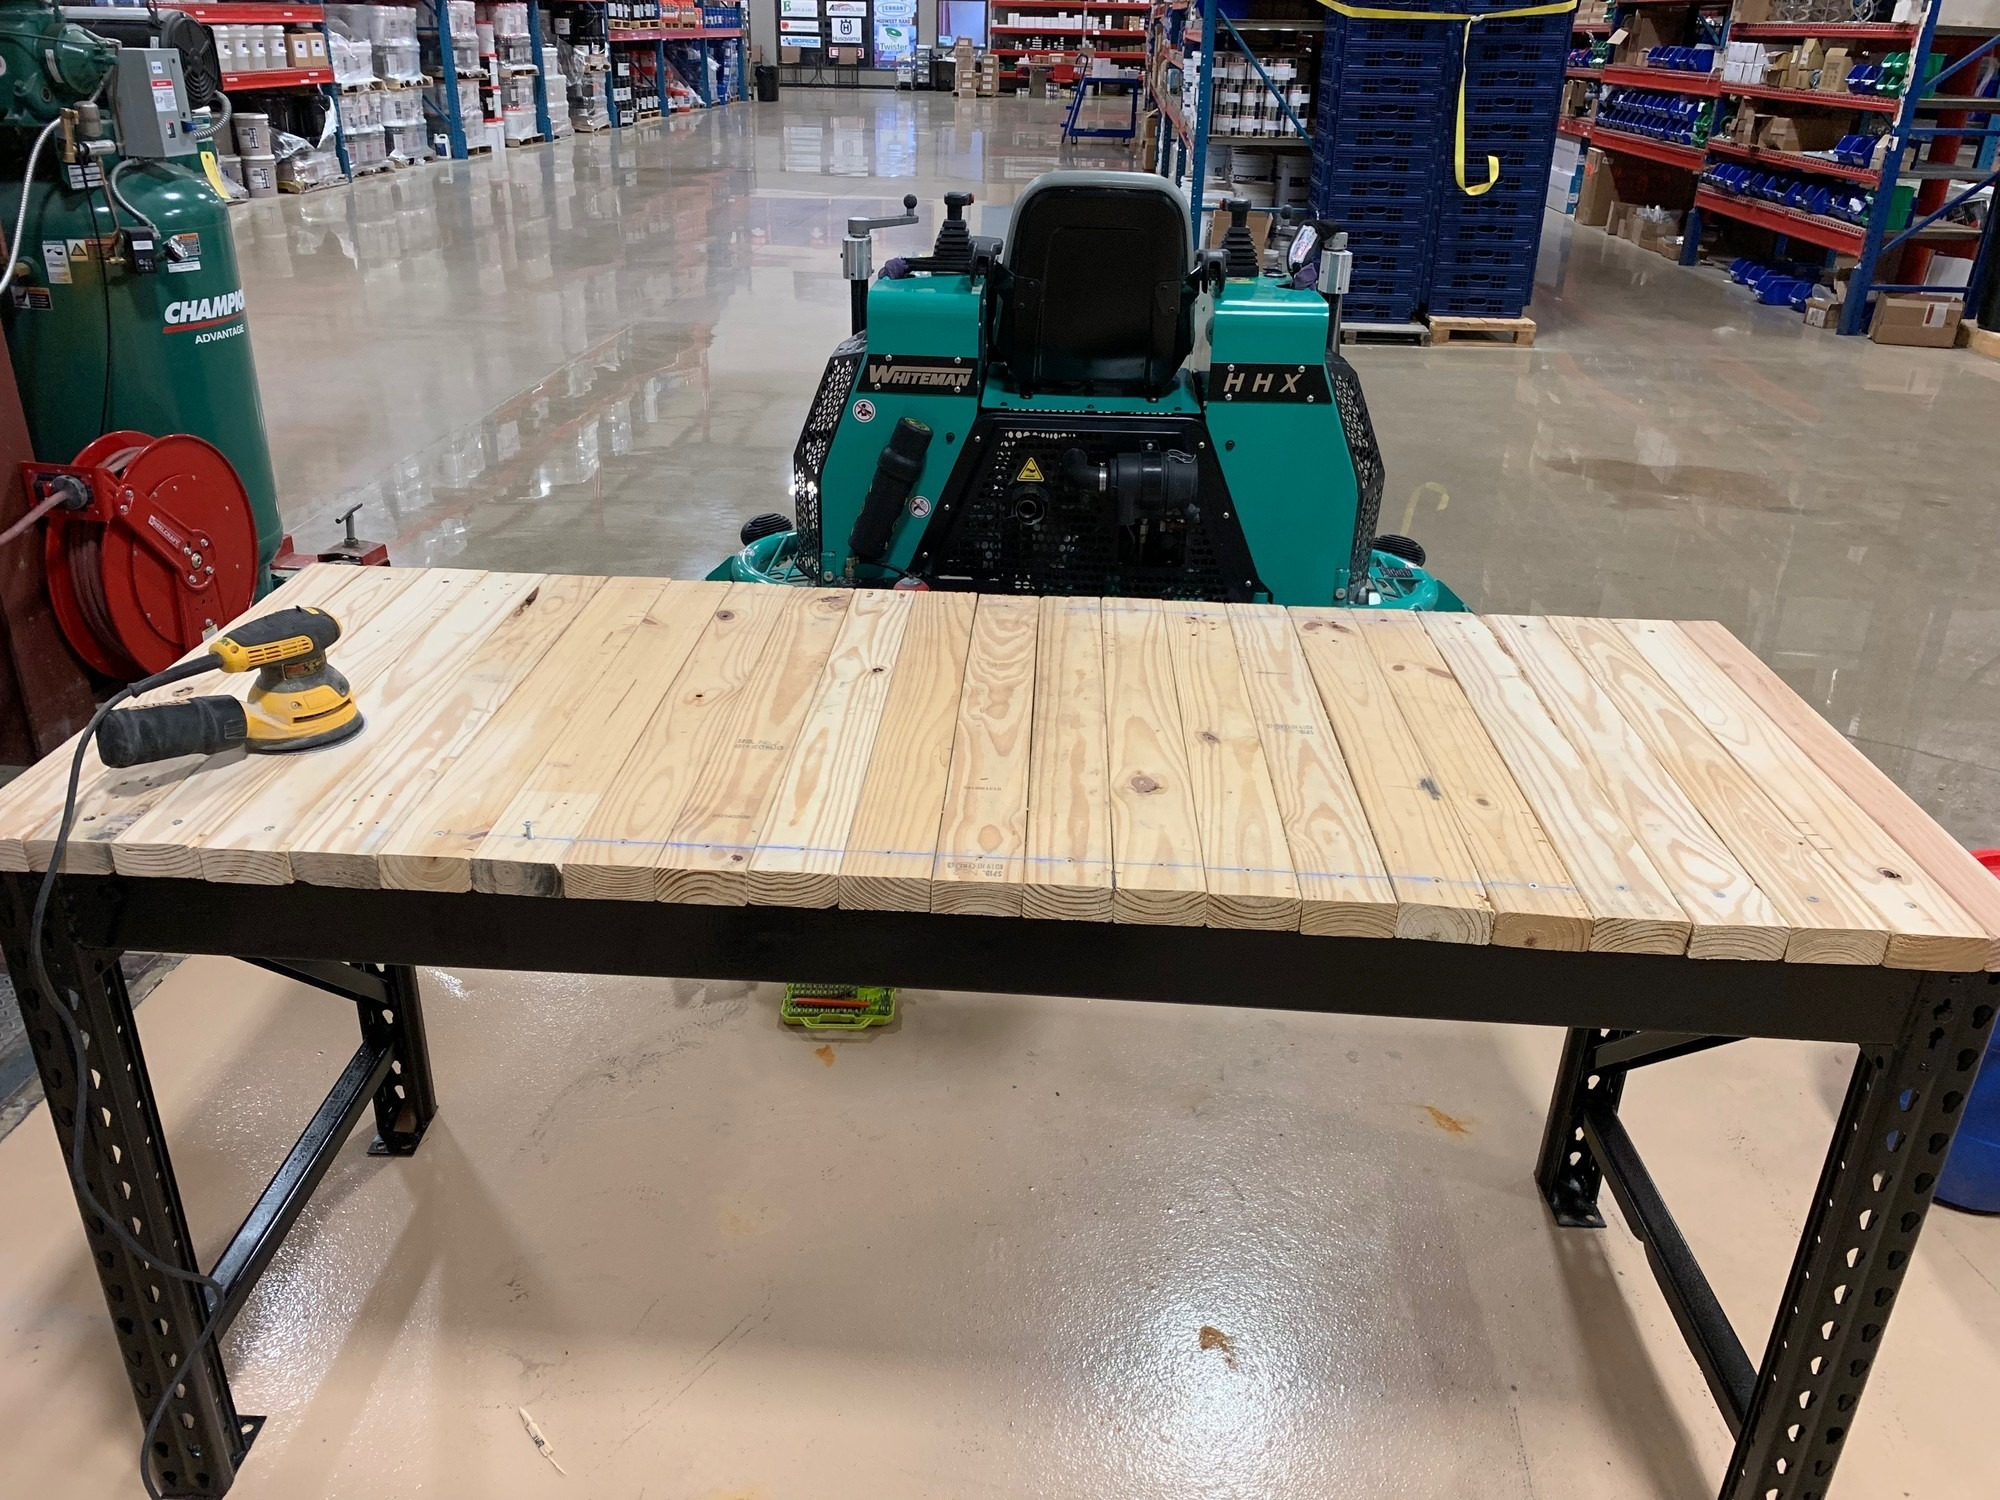 Tremendous How To Build A Diy Epoxy Table Top Workbench Runyon Inzonedesignstudio Interior Chair Design Inzonedesignstudiocom